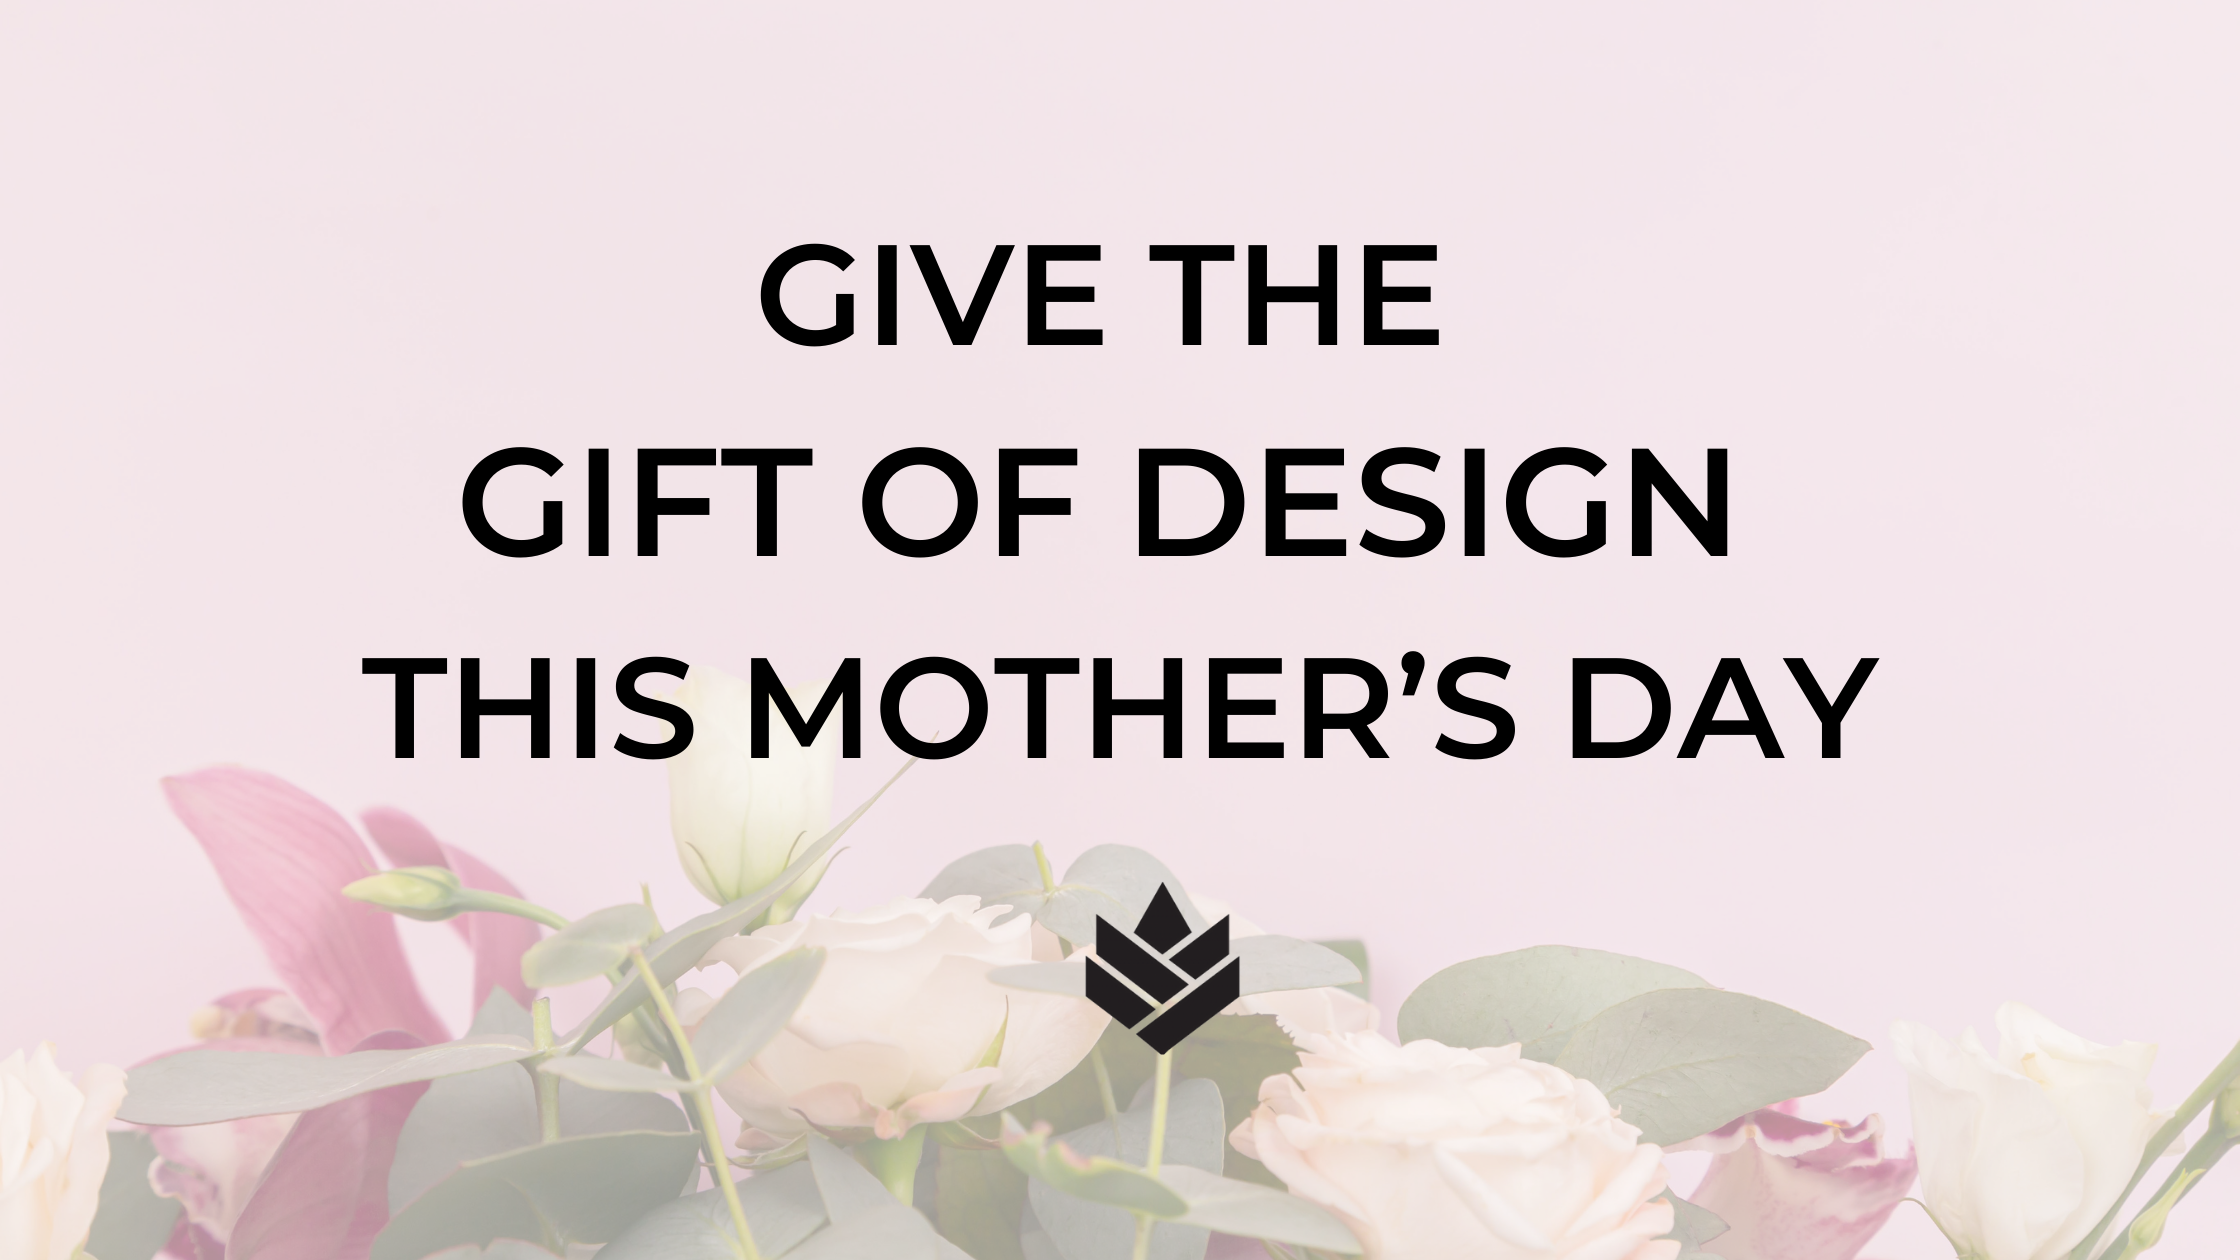 Give the Gift of Design this Mother's Day